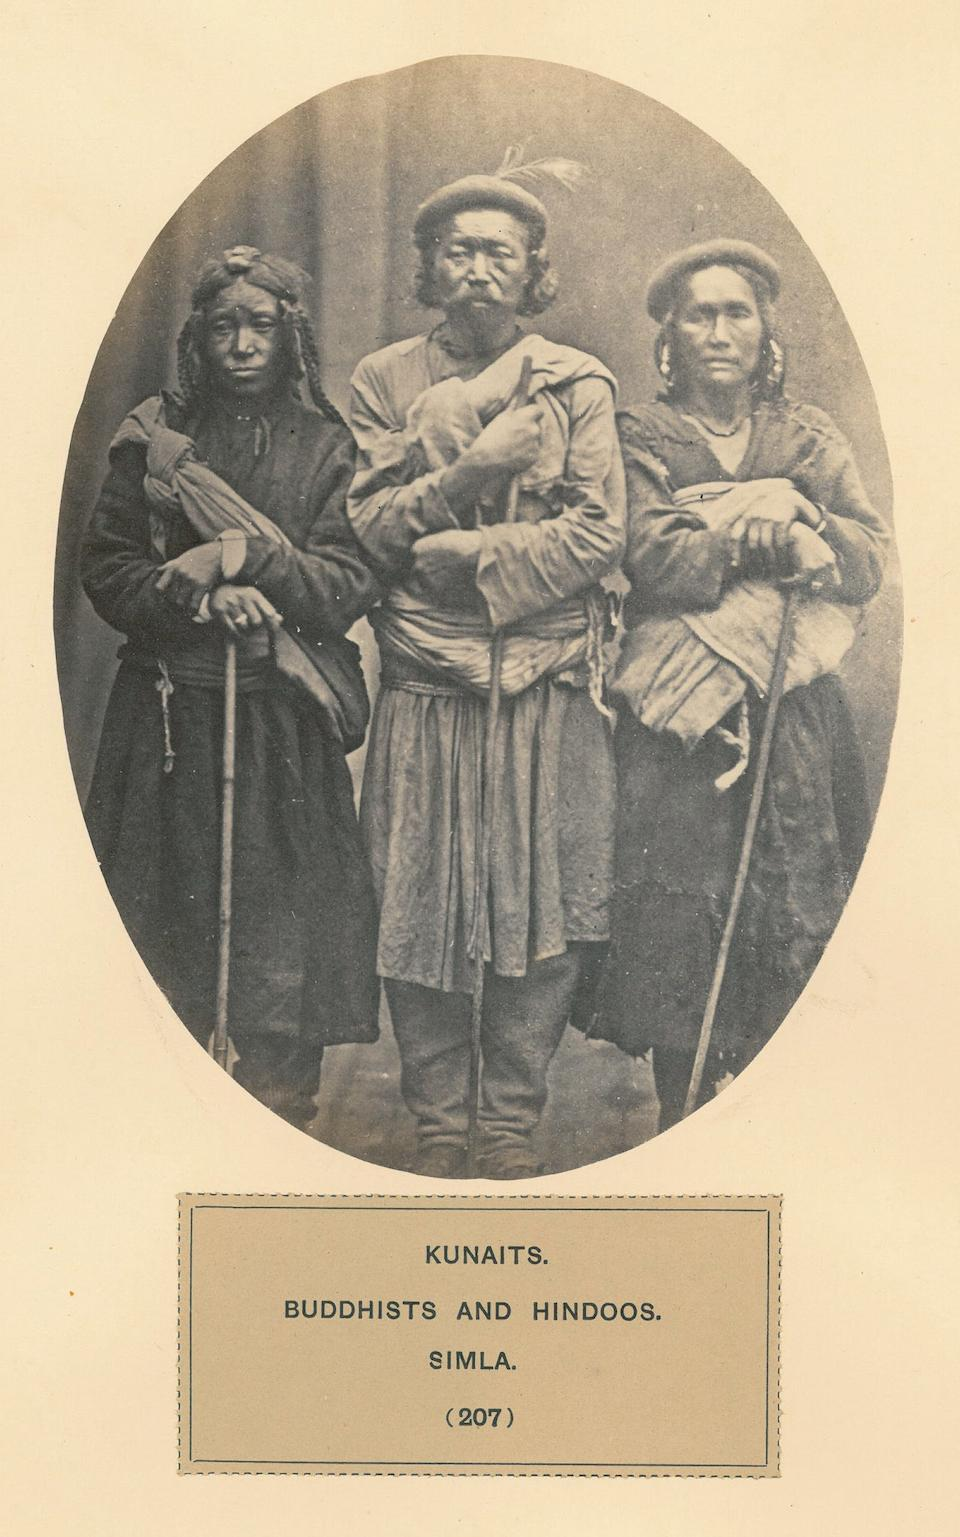 WATSON, JOHN FORBES, AND JOHN WILLIAM KAYE. The People of India: a Series of Photographic Illustrations, with Descriptive Letterpress, of the Races and Tribes of Hindustan. London: India Museum: 1868-1875.